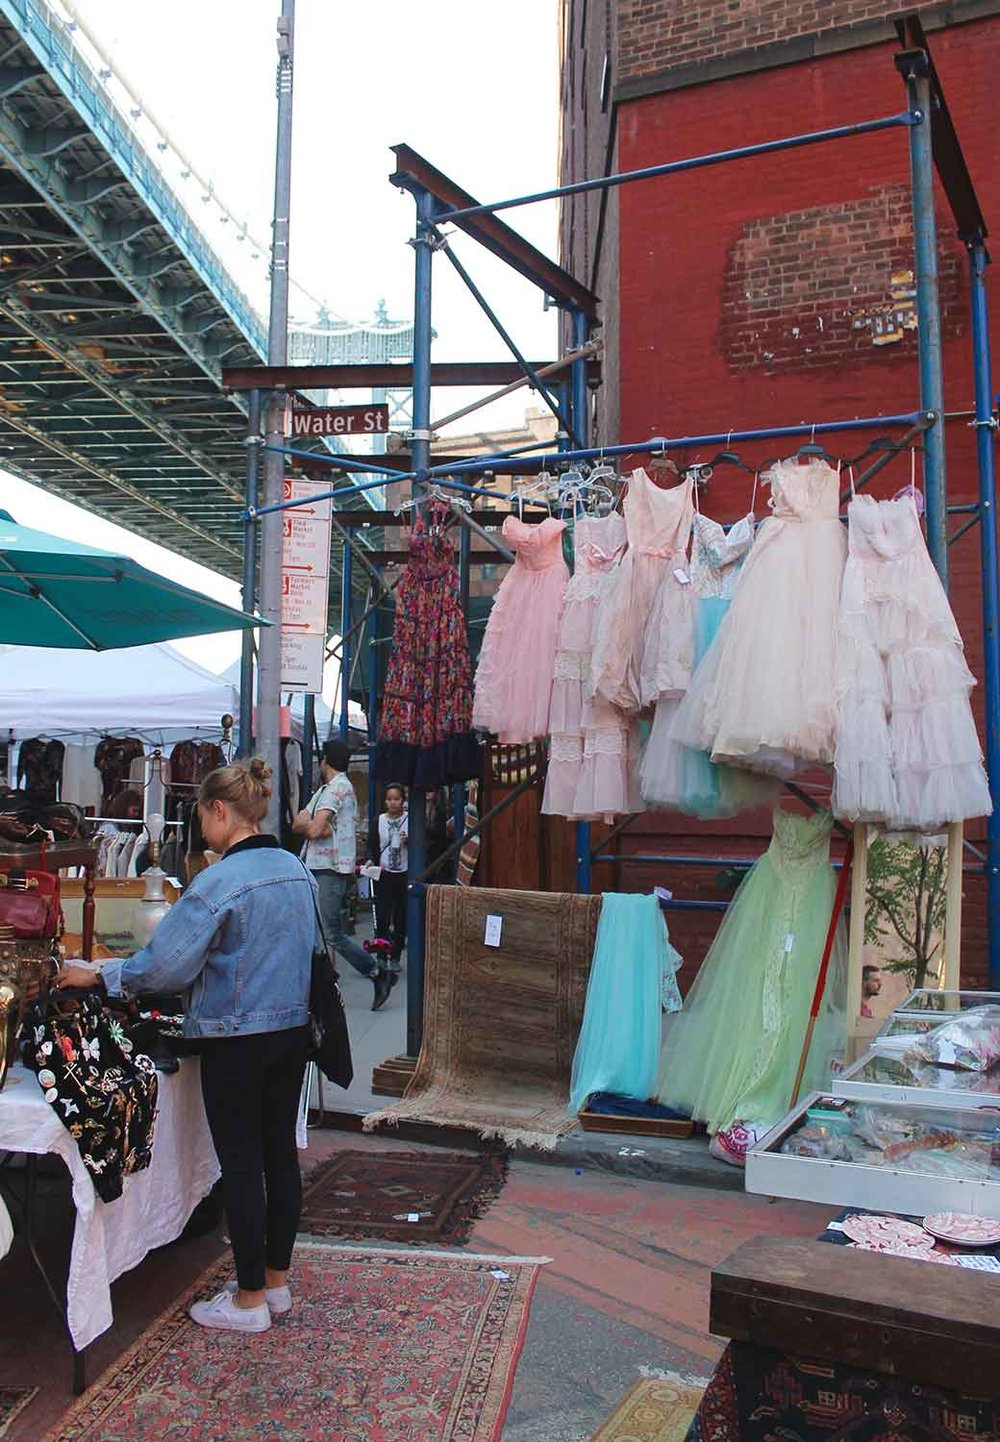 Brooklyn-Vintage-Flea-Market-NYC-via-5thfloorwalkup.com-by-Melina-Peterson_7004.jpg